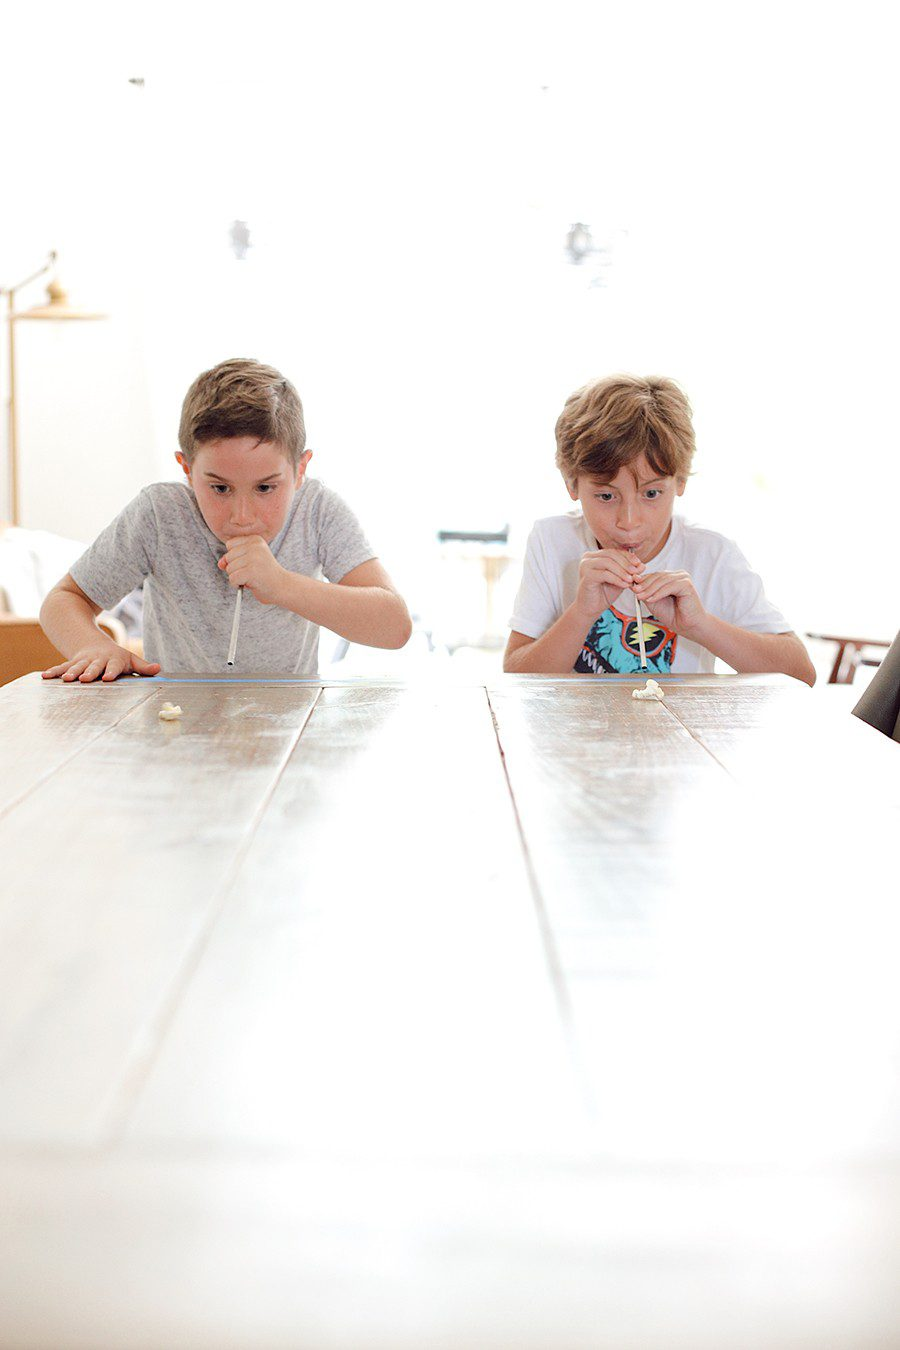 Popcorn race and more fun popcorn games for family game night! | Family Fun Night by popular Florida lifestyle blog, Fresh Mommy Blog: image of some kids blowing a piece of popcorn across a table with some straws.